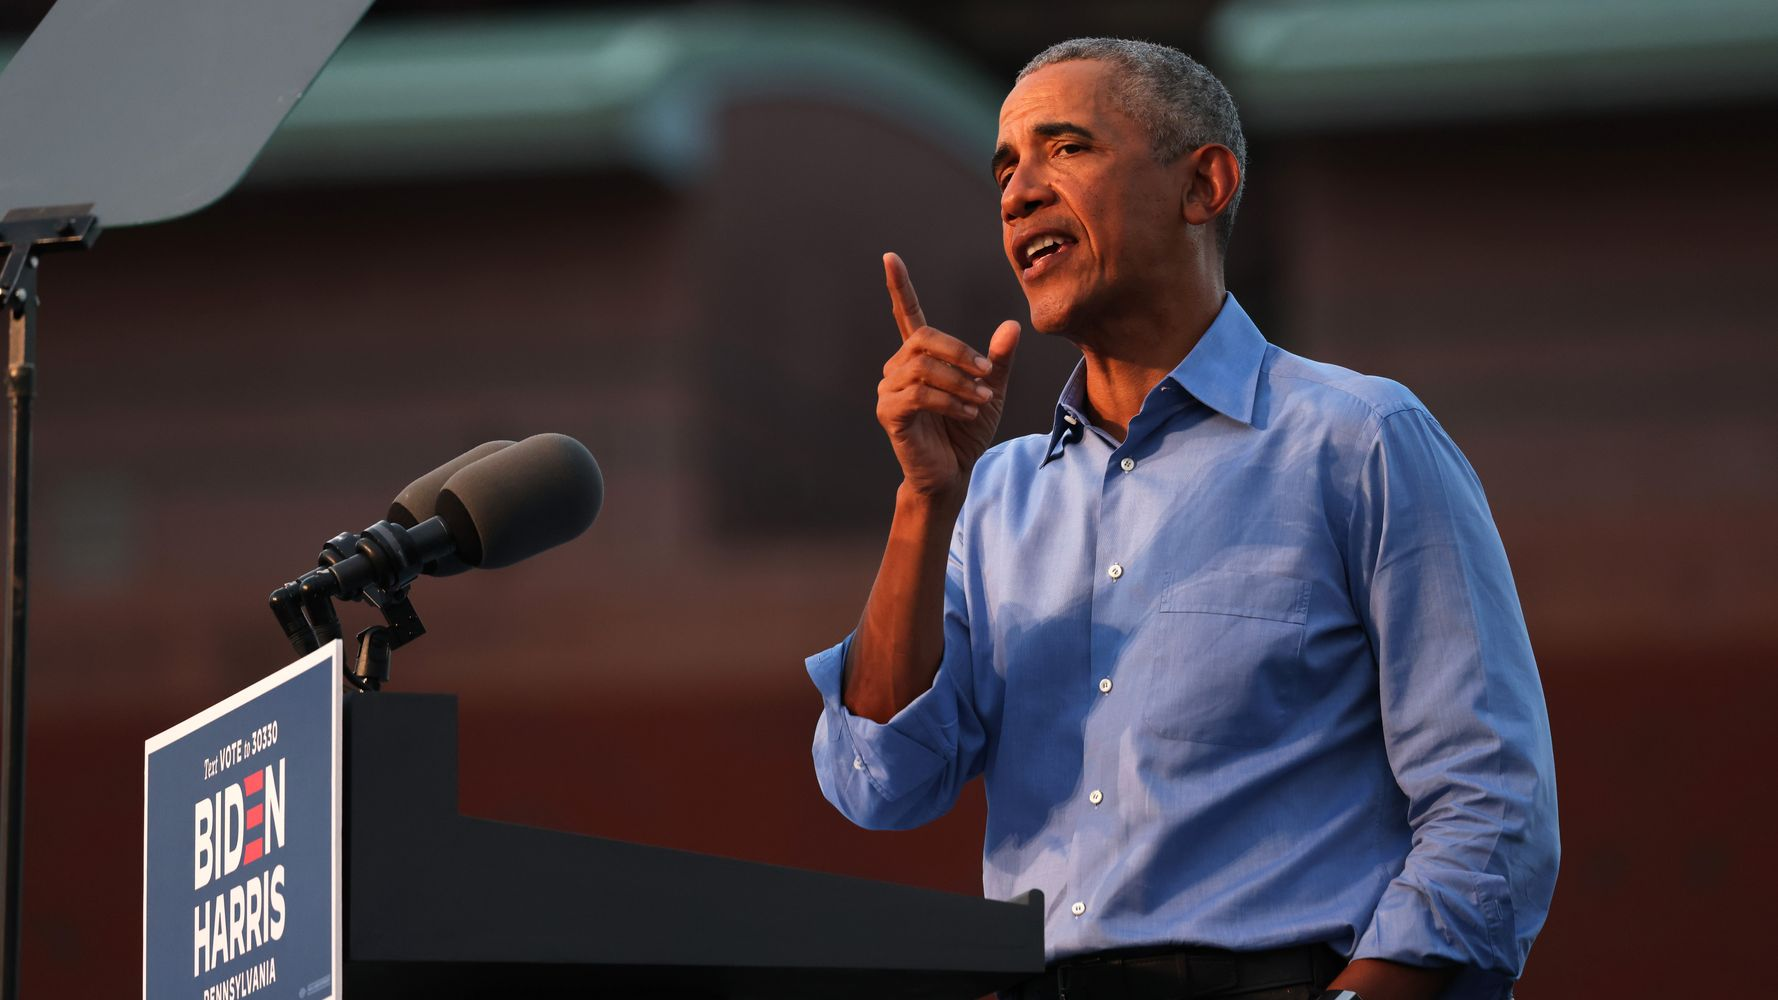 """It won't be so exhausting, just having a normal president,"" former President Barack Obama told a Florida crowd."